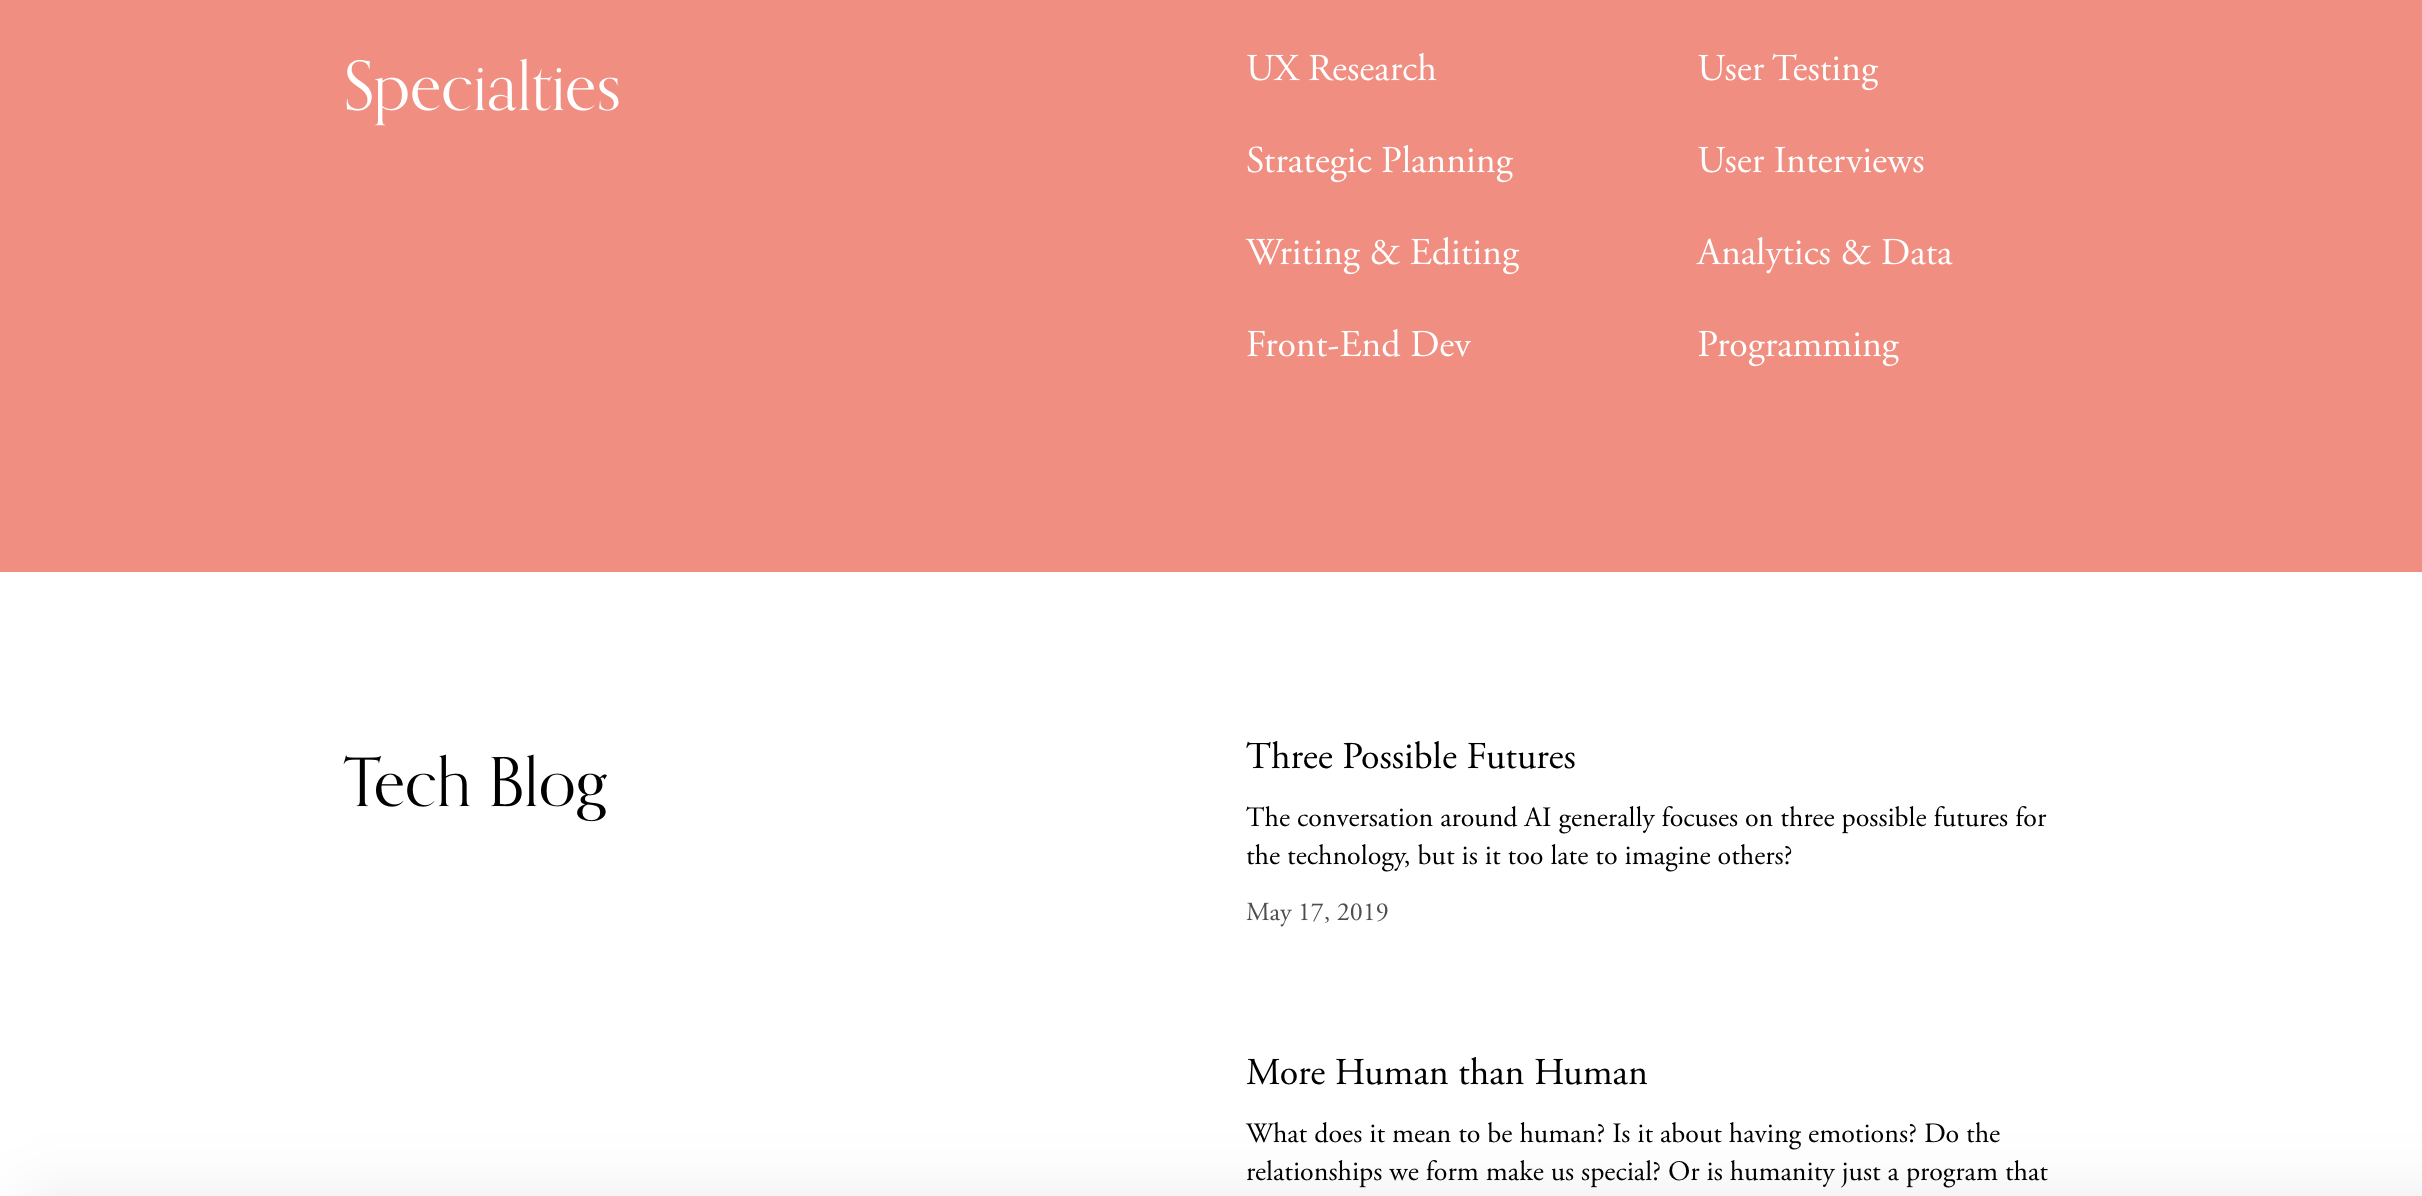 Amal_demo_site_uses_page_sections_to_make_a_striking_resume_in_distinct_parts.png